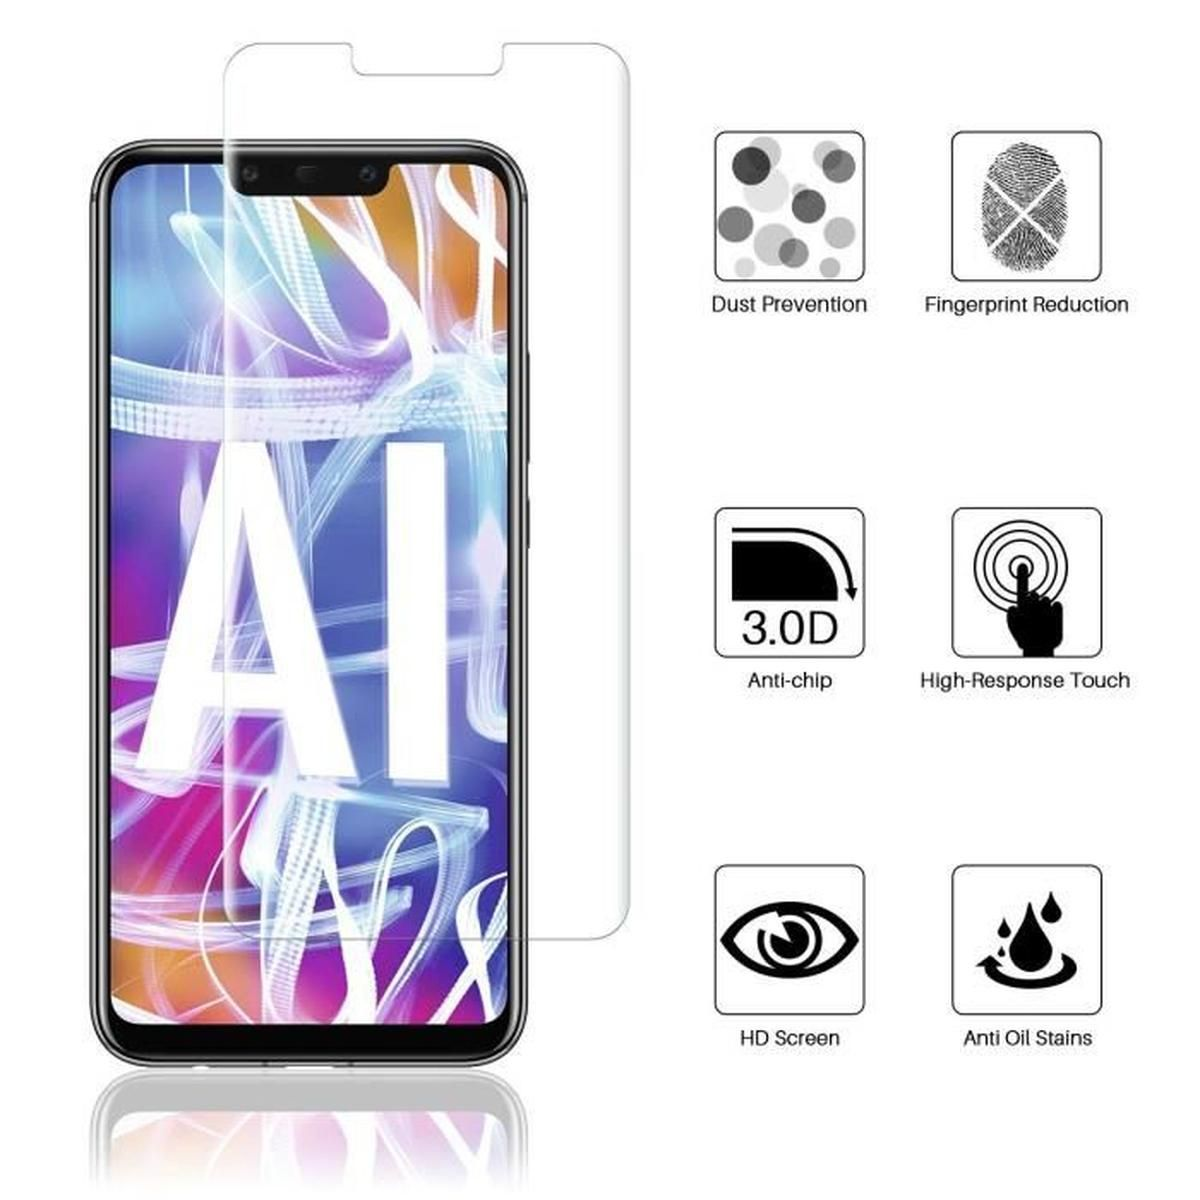 Cdiscount Smartphone Best Of Huawei Mate 20 Lite Vitre Protection D Ecran En Verre Trempé Incassable Lot De 2 Glass Of 32 Élégant Cdiscount Smartphone